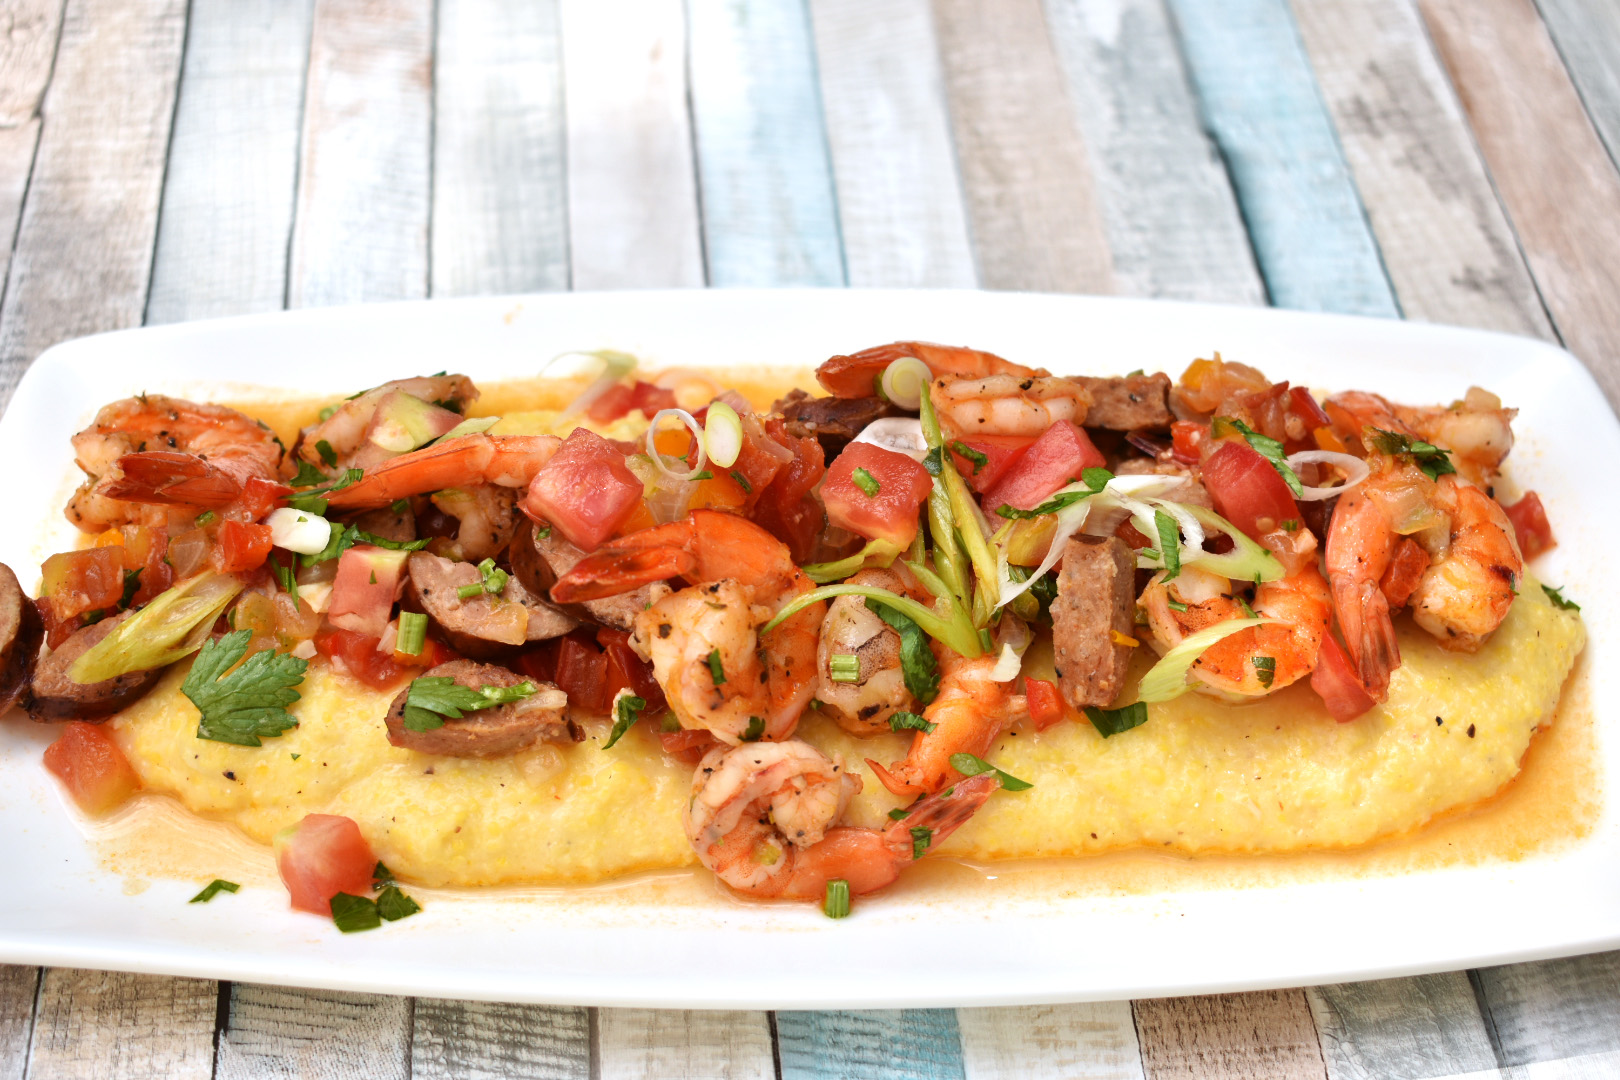 Spicy Shrimp and Creamy Parmesan Grits